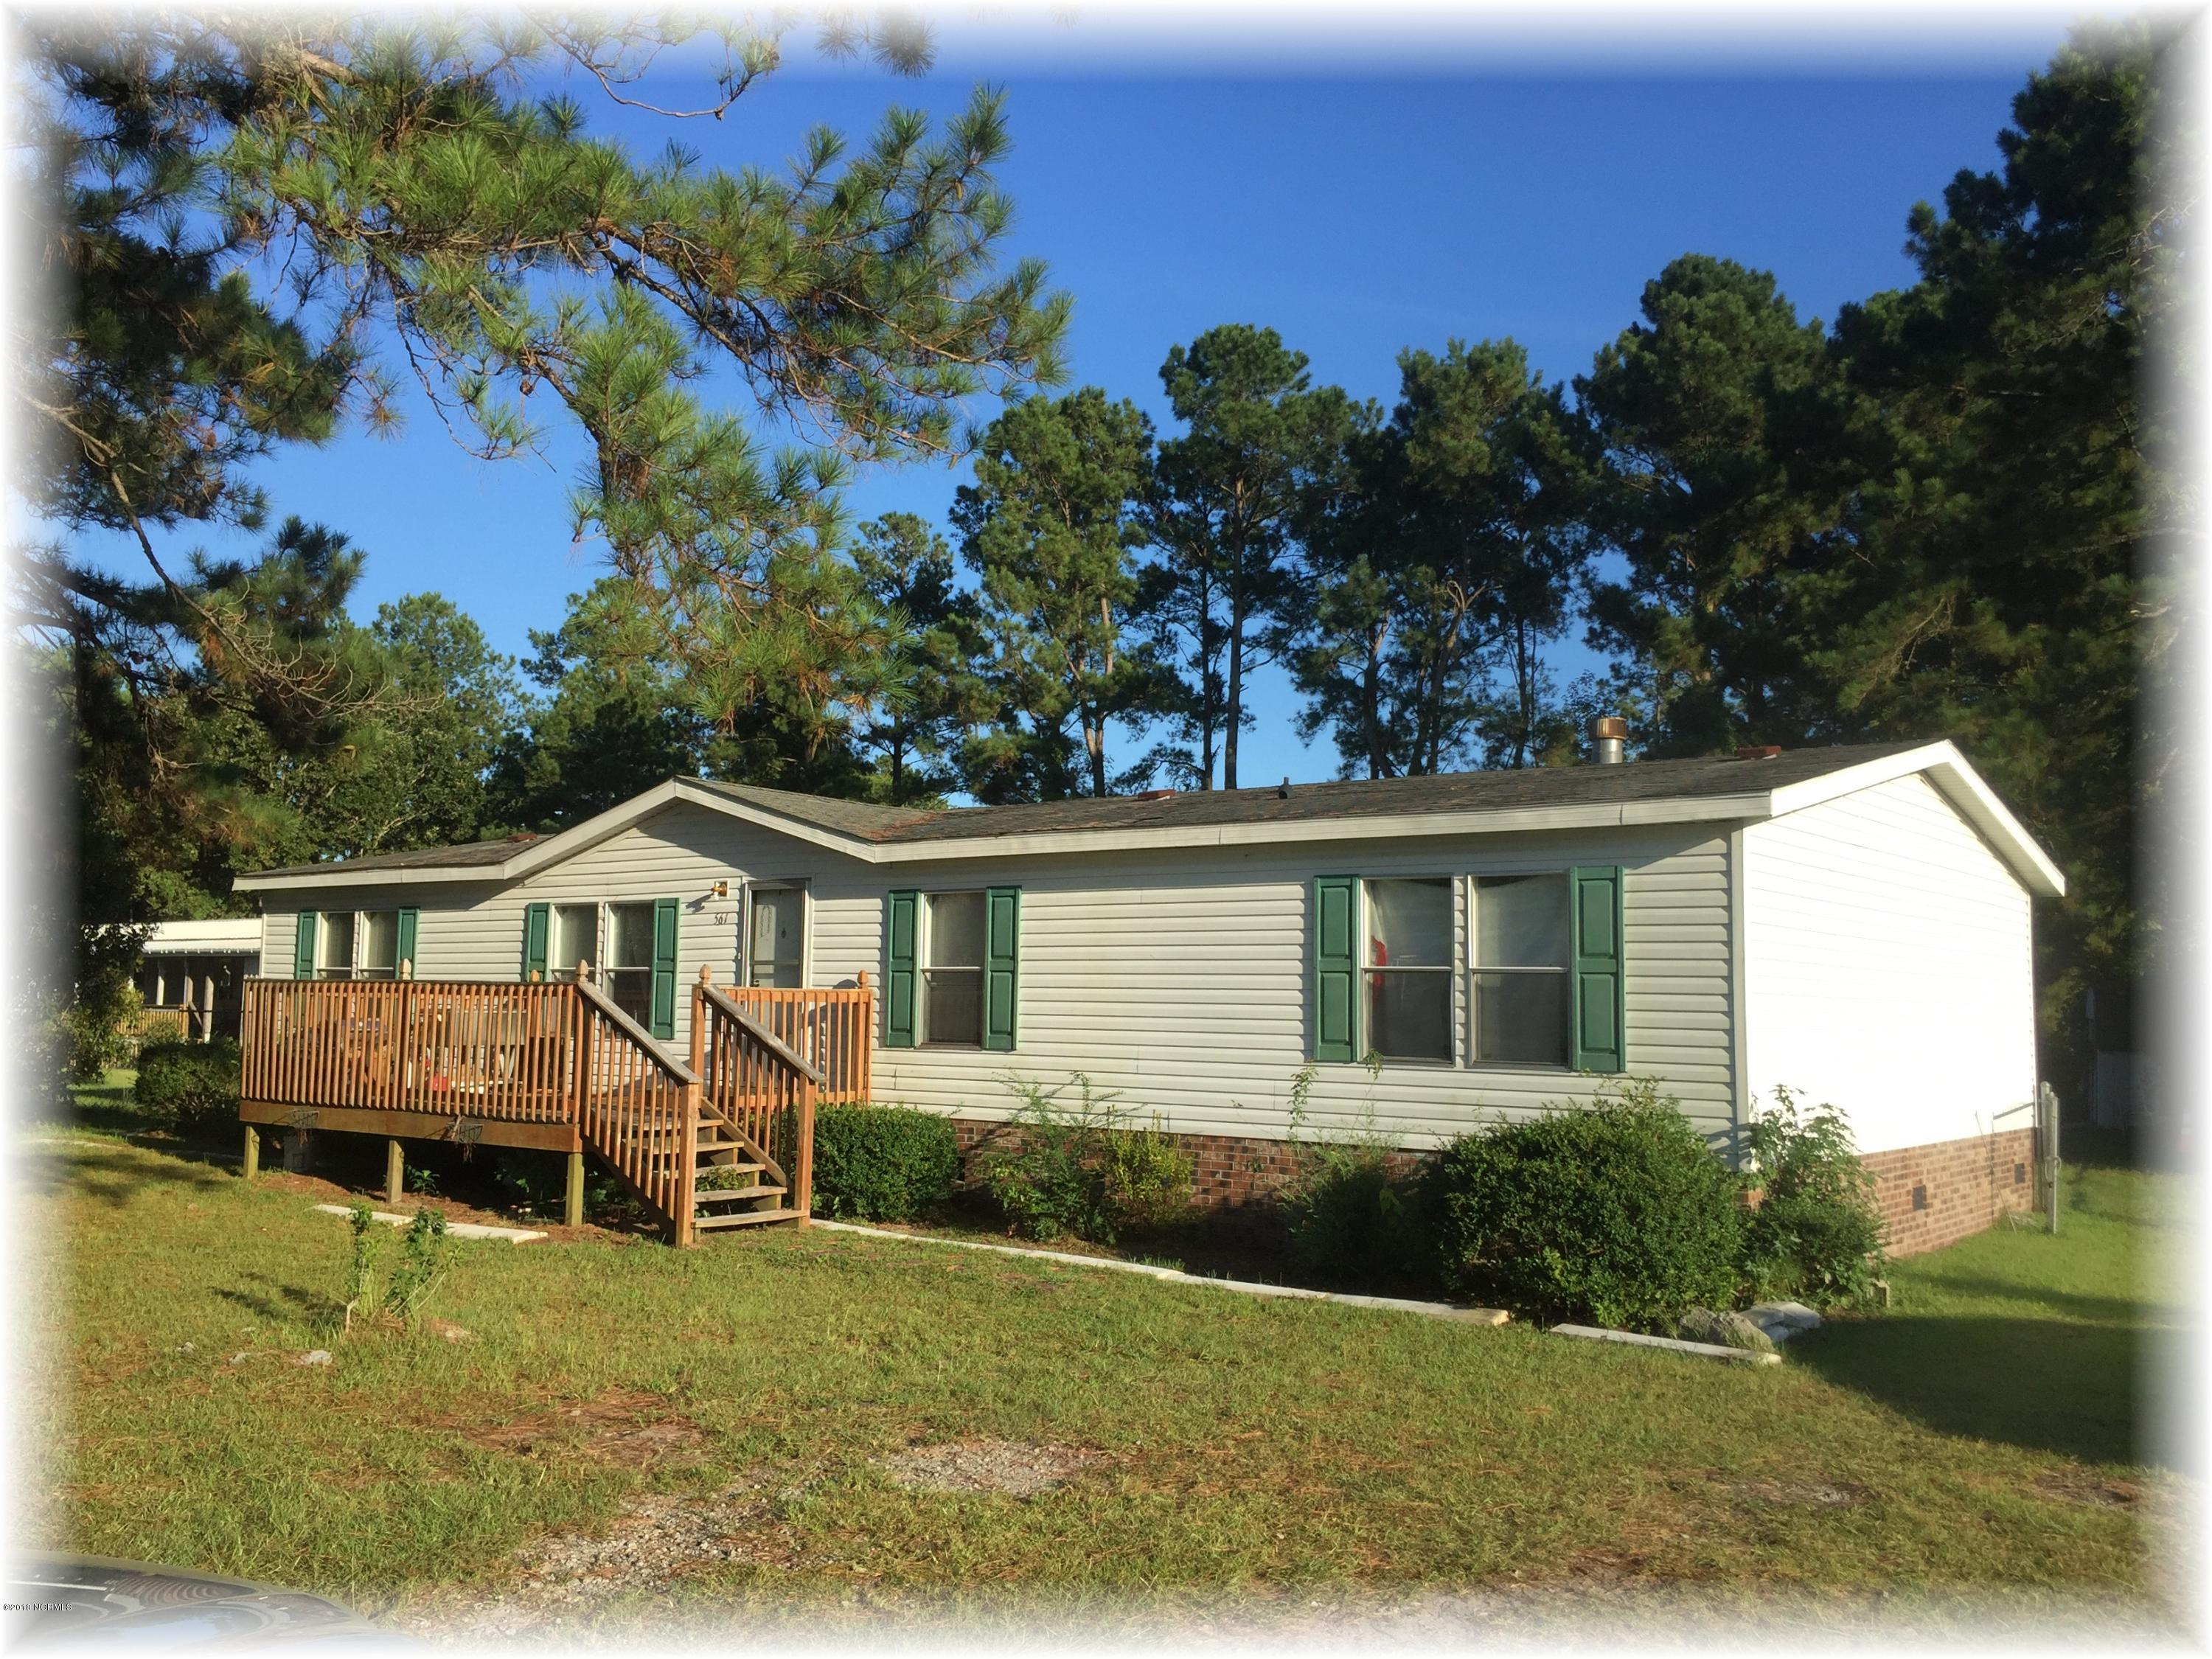 Carolina Plantations Real Estate - MLS Number: 100132708